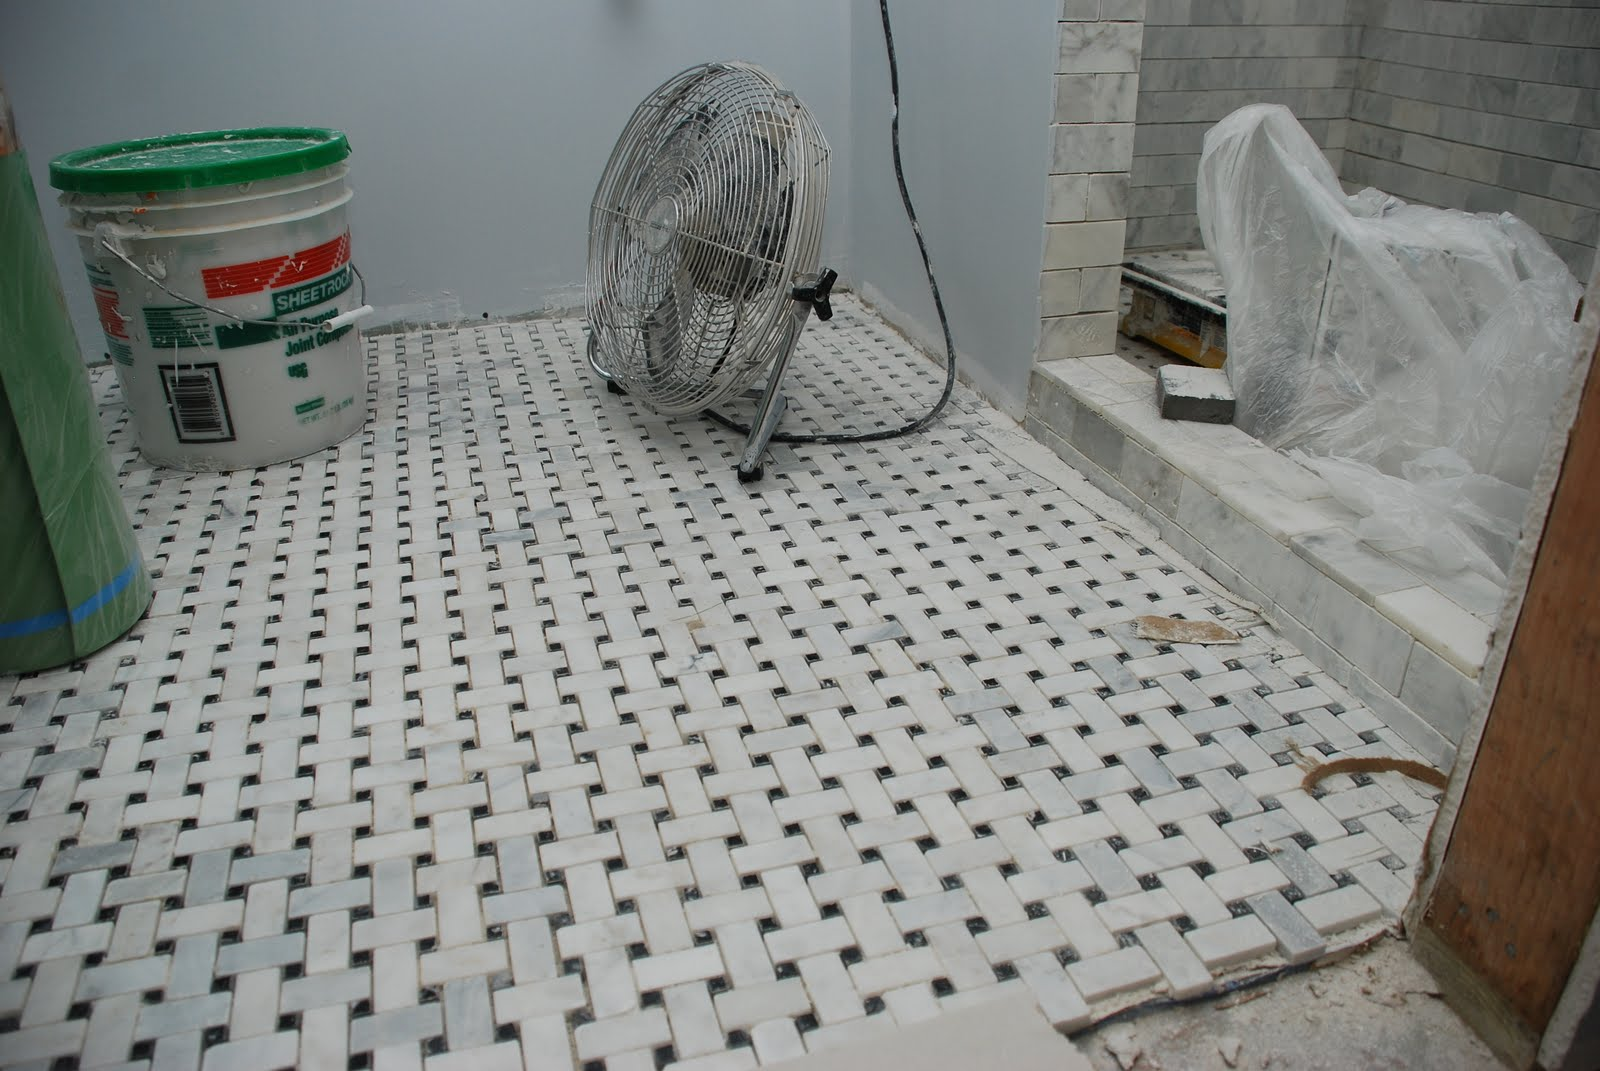 And Finally Yesterday They Started Building The Built In Shelves In